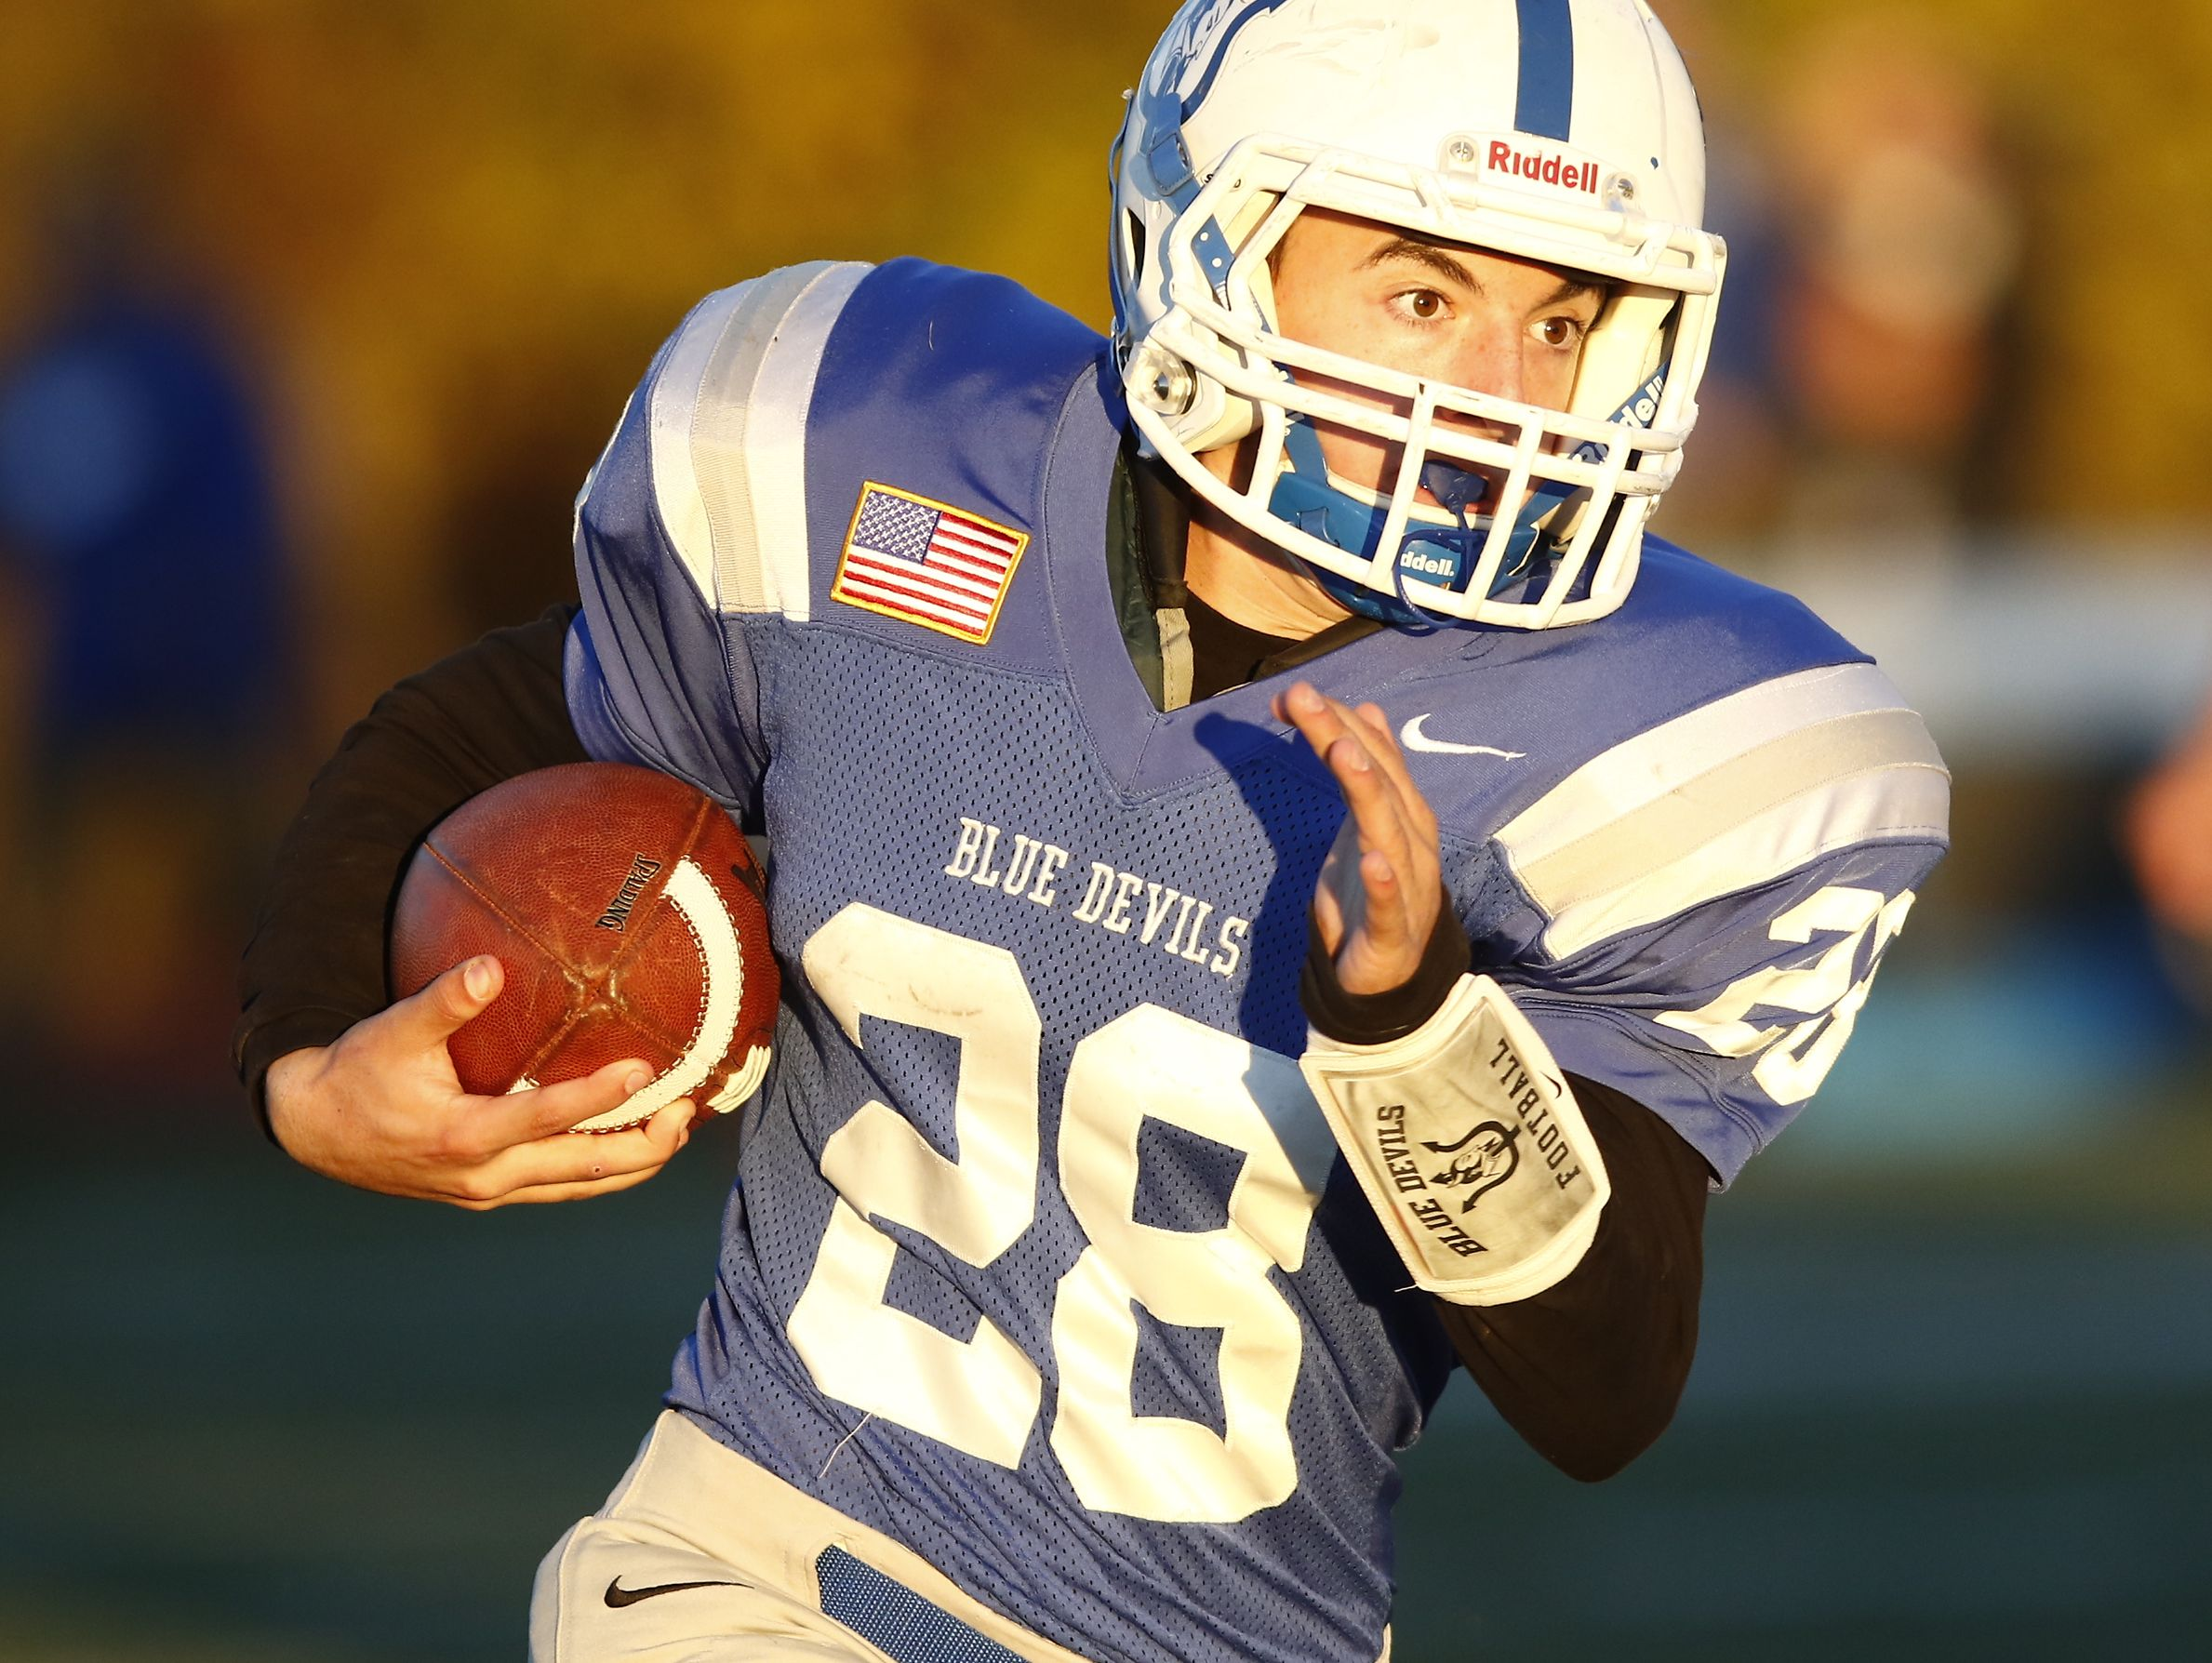 Haldane's Joe Digregorio (28) runs outside during their 26-6 win over Tuckahoe in the Section 1 Class D championship football game at Mahopac High School on Friday, November 4, 2016.